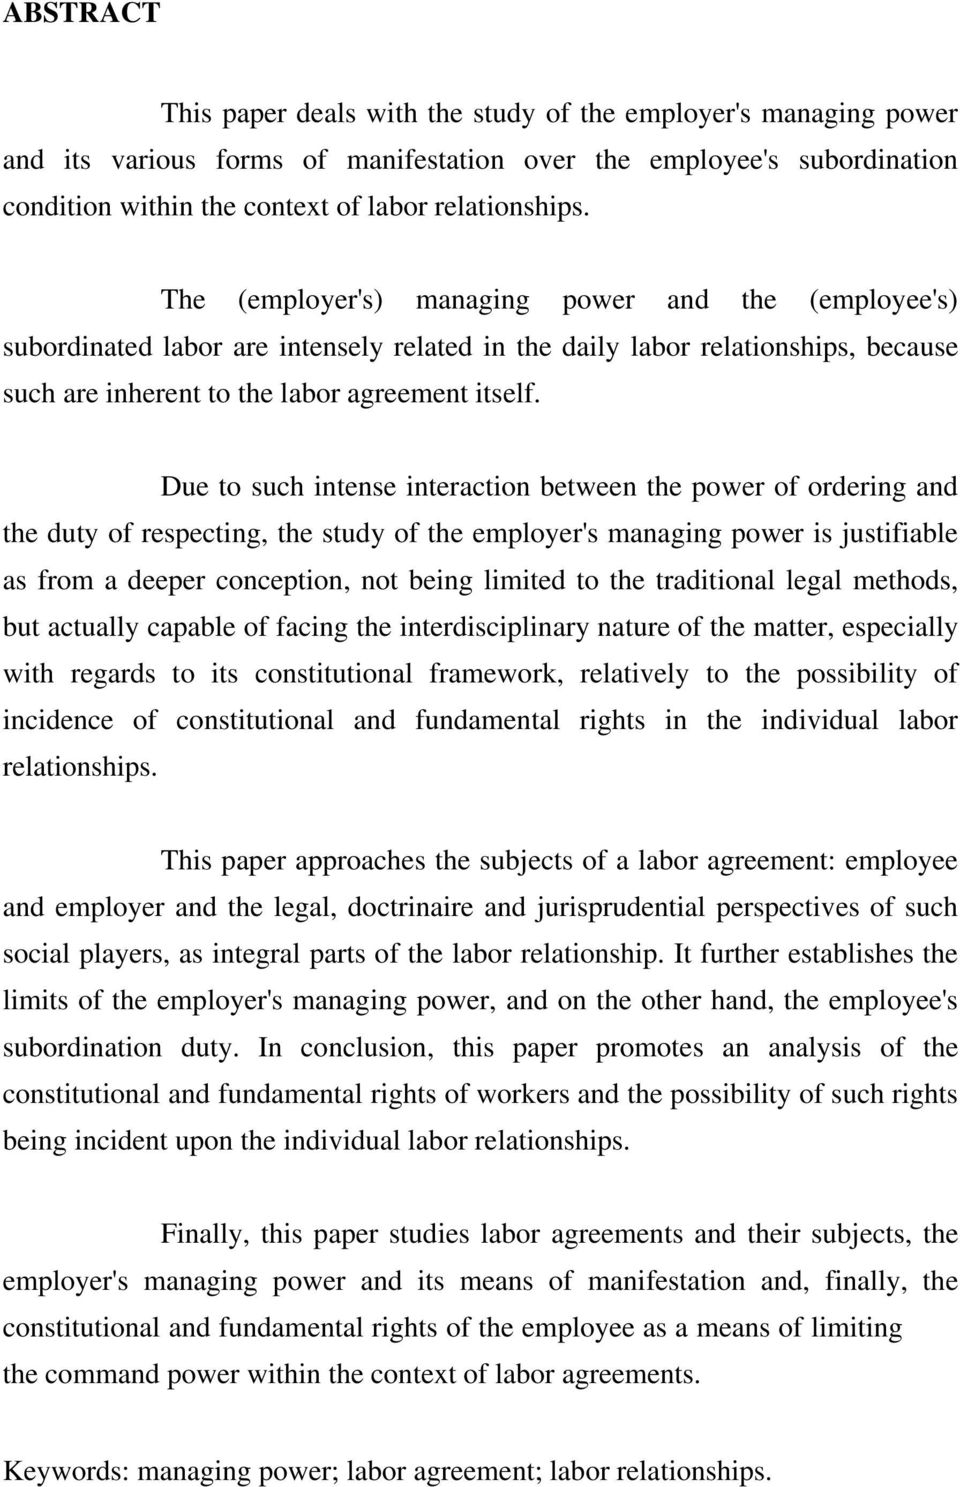 Due to such intense interaction between the power of ordering and the duty of respecting, the study of the employer's managing power is justifiable as from a deeper conception, not being limited to